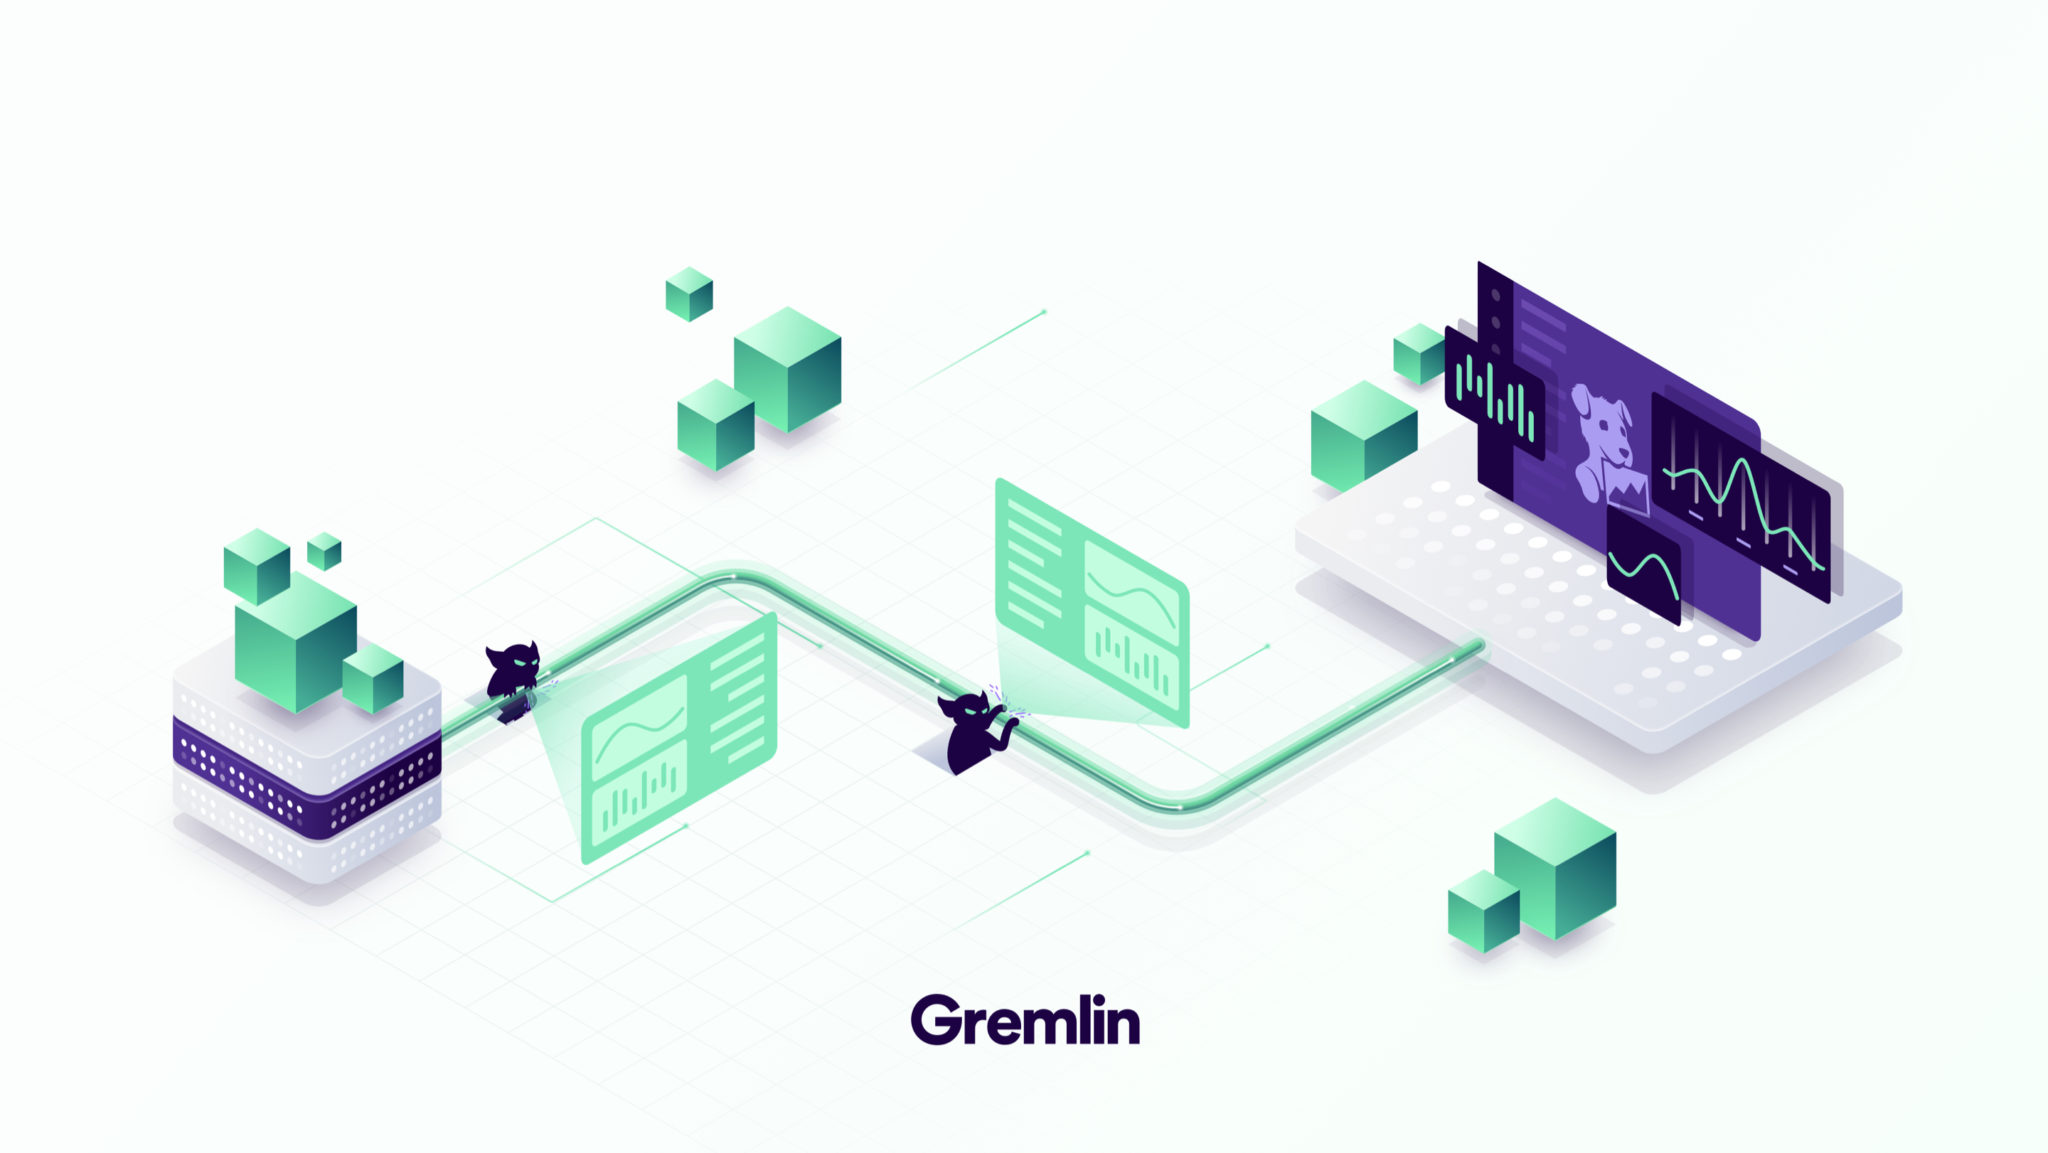 Illustration_04-Gremlin@2x